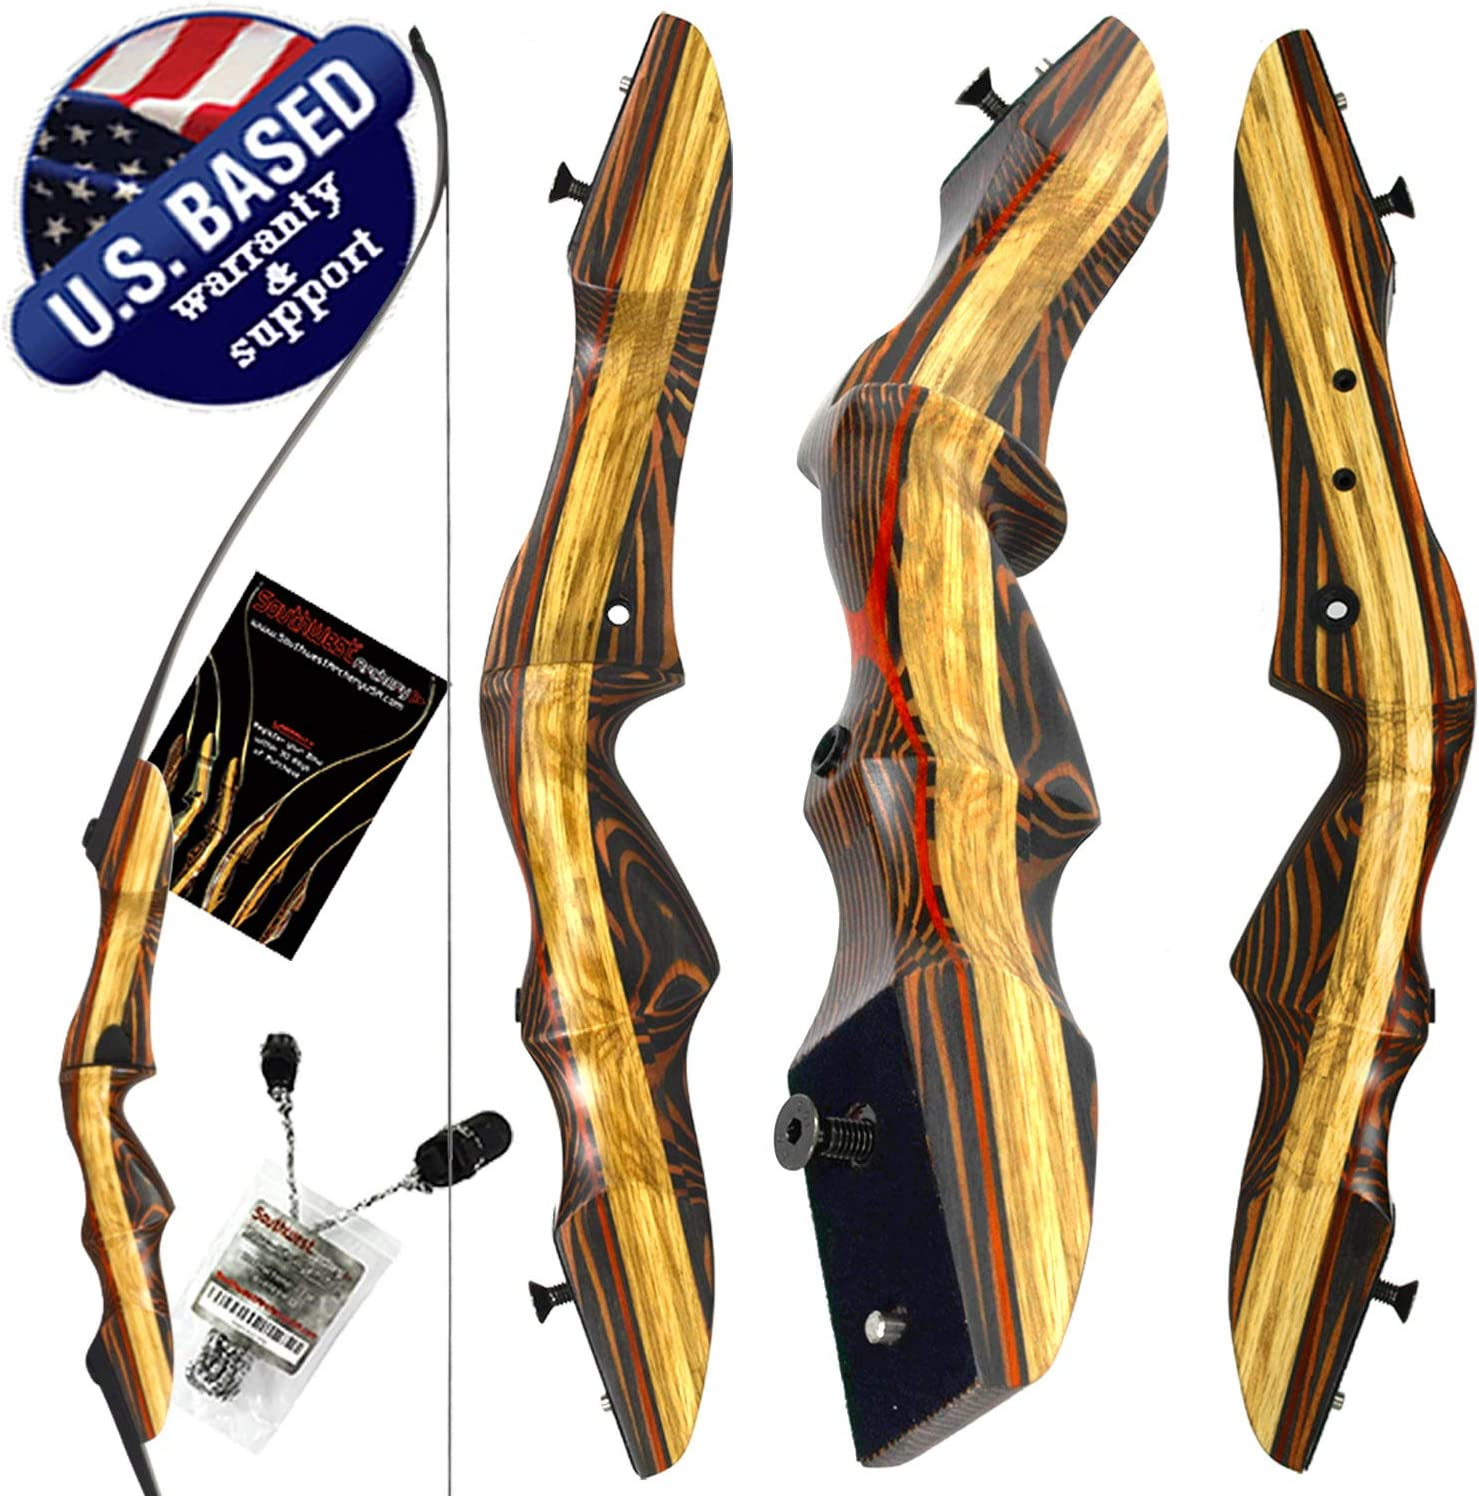 Samick Sage Youth 62 In Takedown Recurve Bow Left or Right Hand Open Box